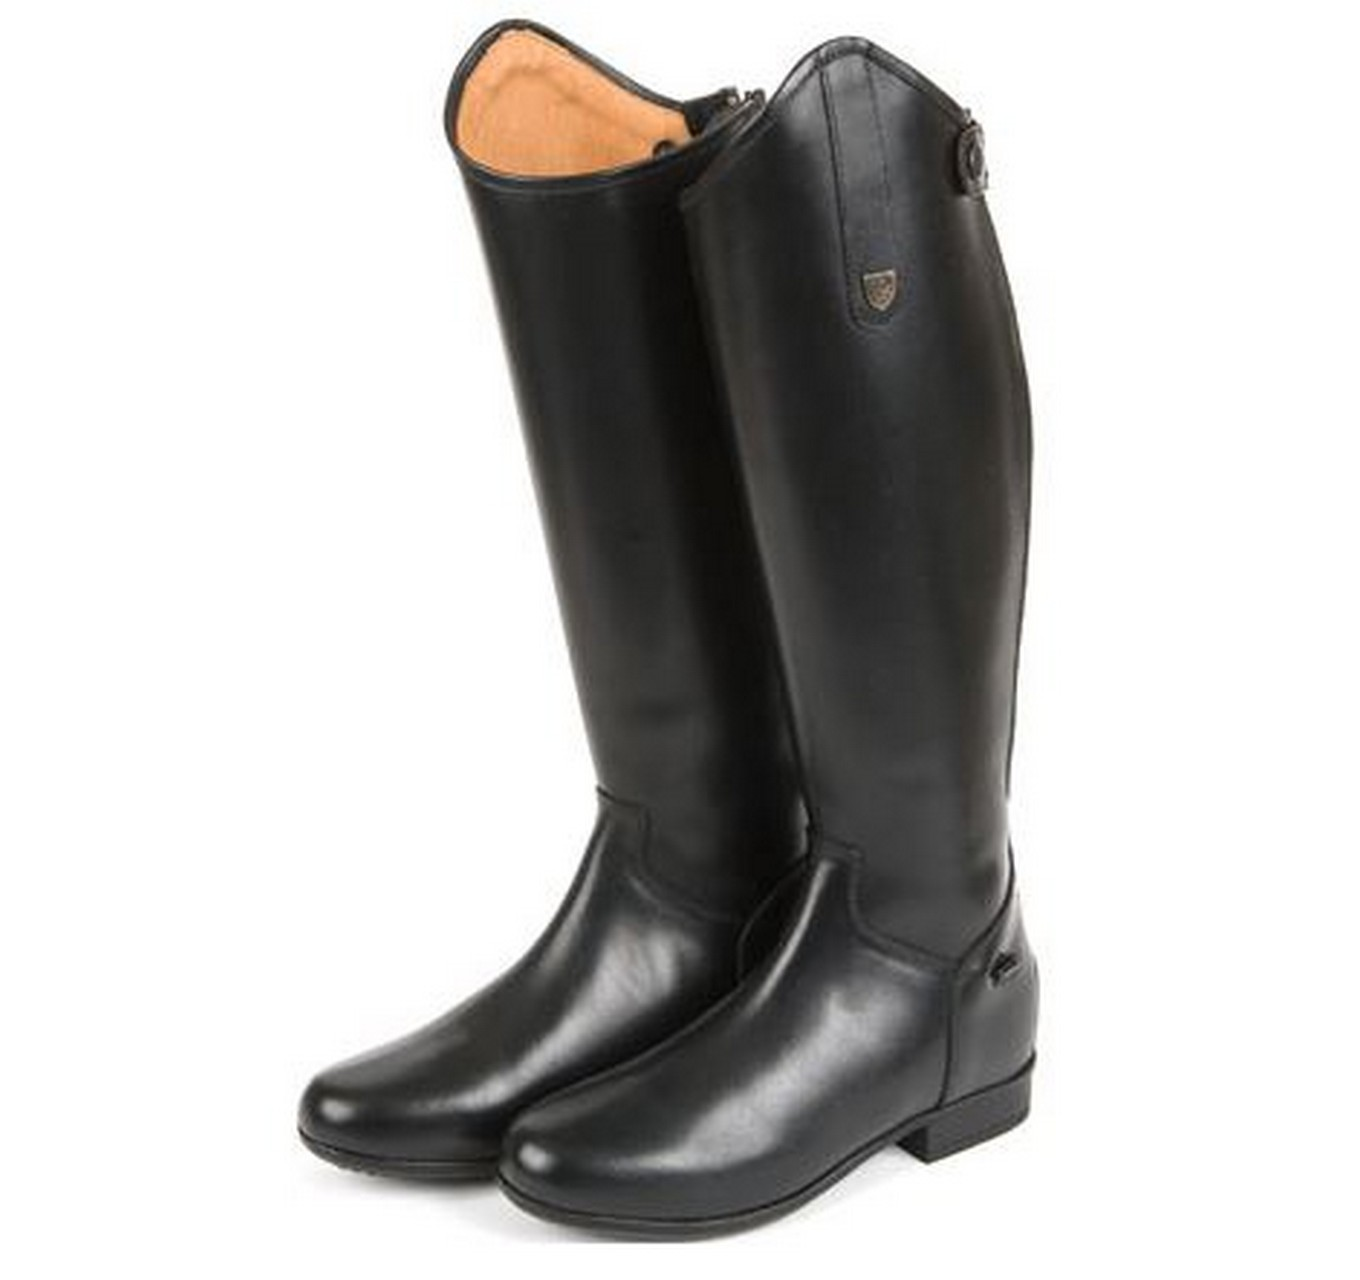 Hemsley Long Boot Adult 9